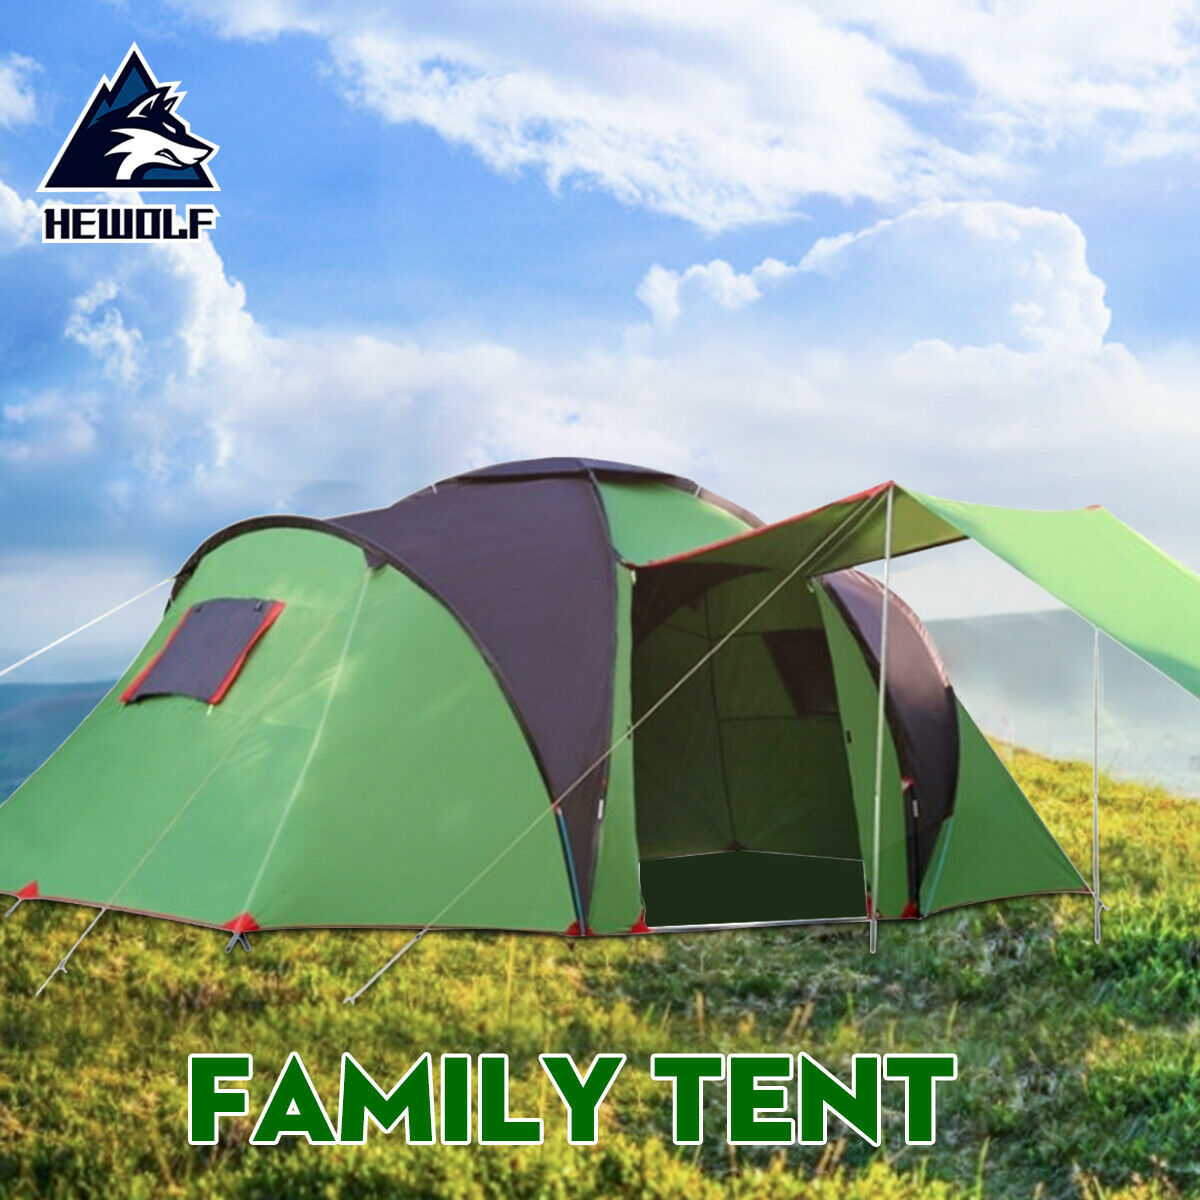 6 Person Large Family Camping Tent Waterproof Hiking Travel 2 Room Outdoor Tents